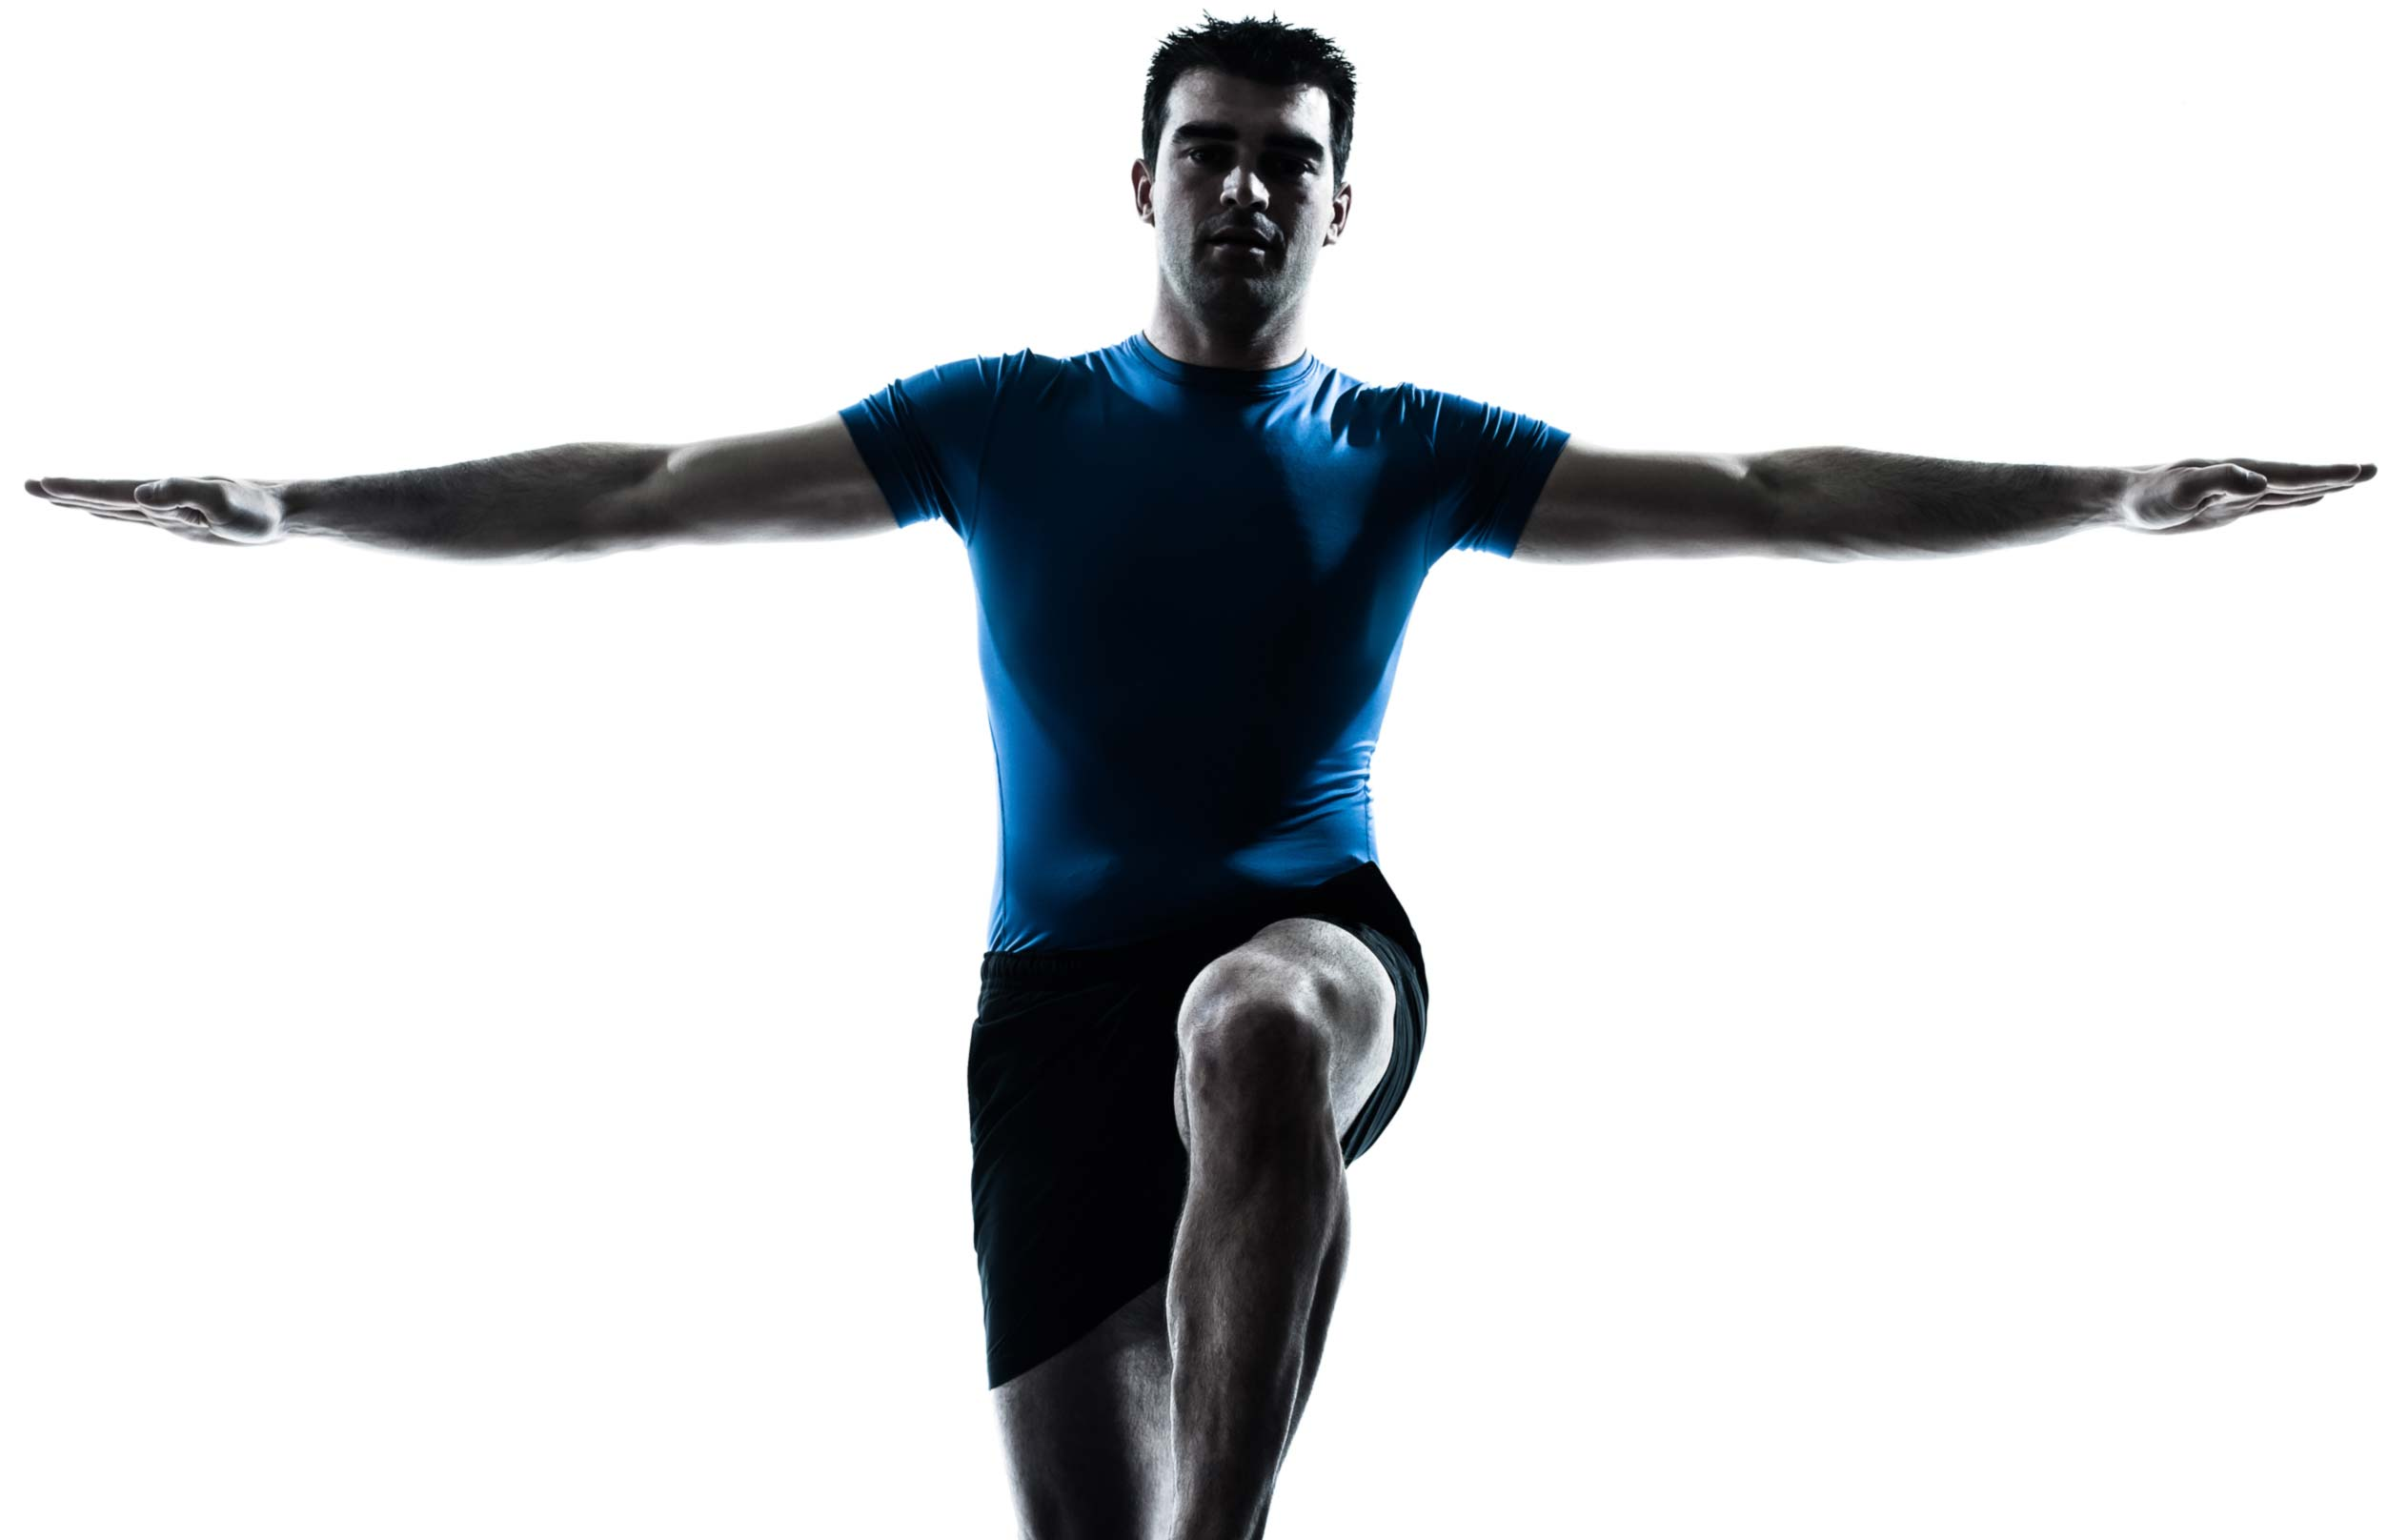 Physiotherapy Solutions - image of man using exercise ball